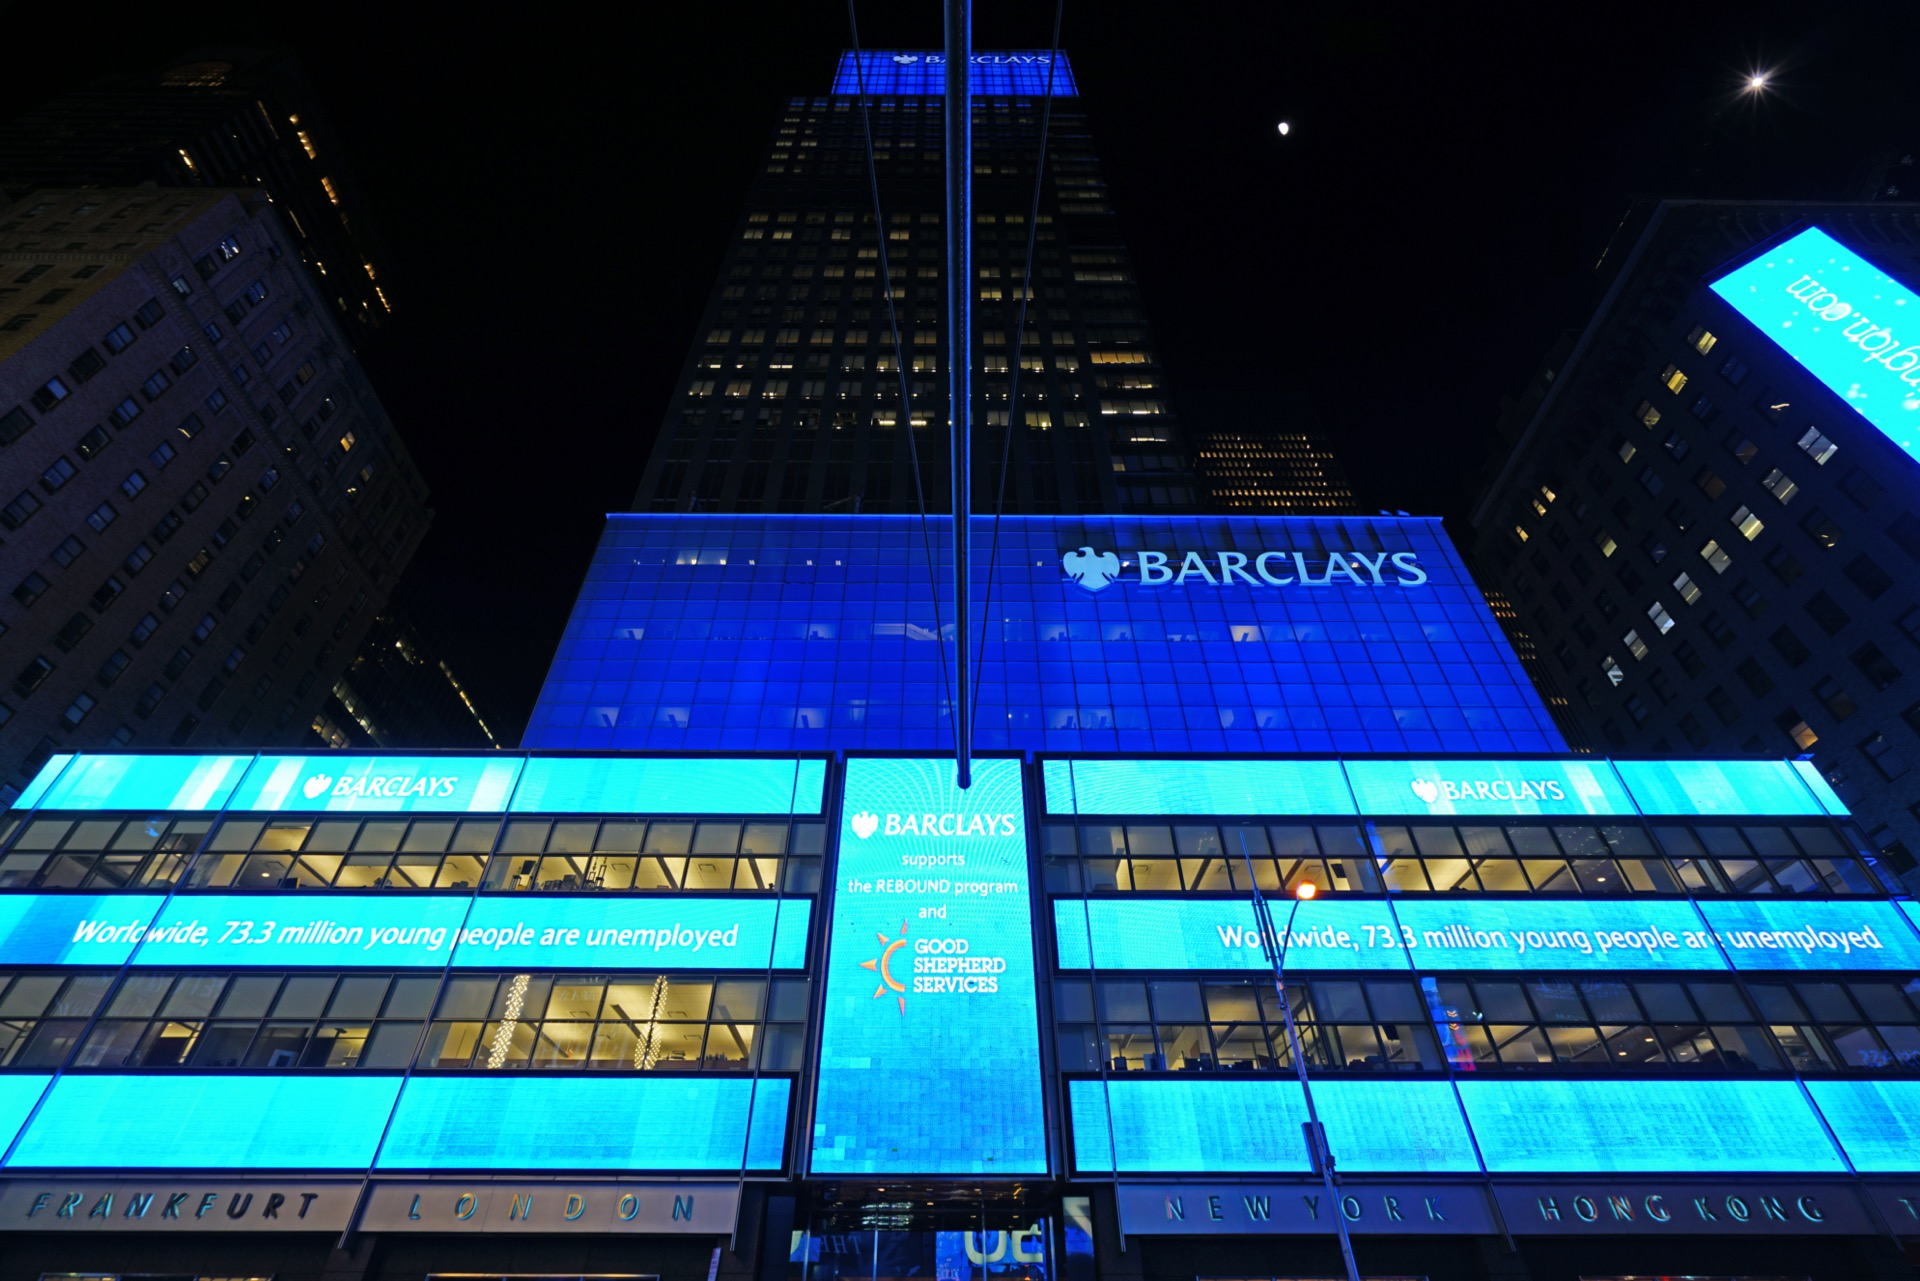 Barclays' Binance ban: Why does it matter?